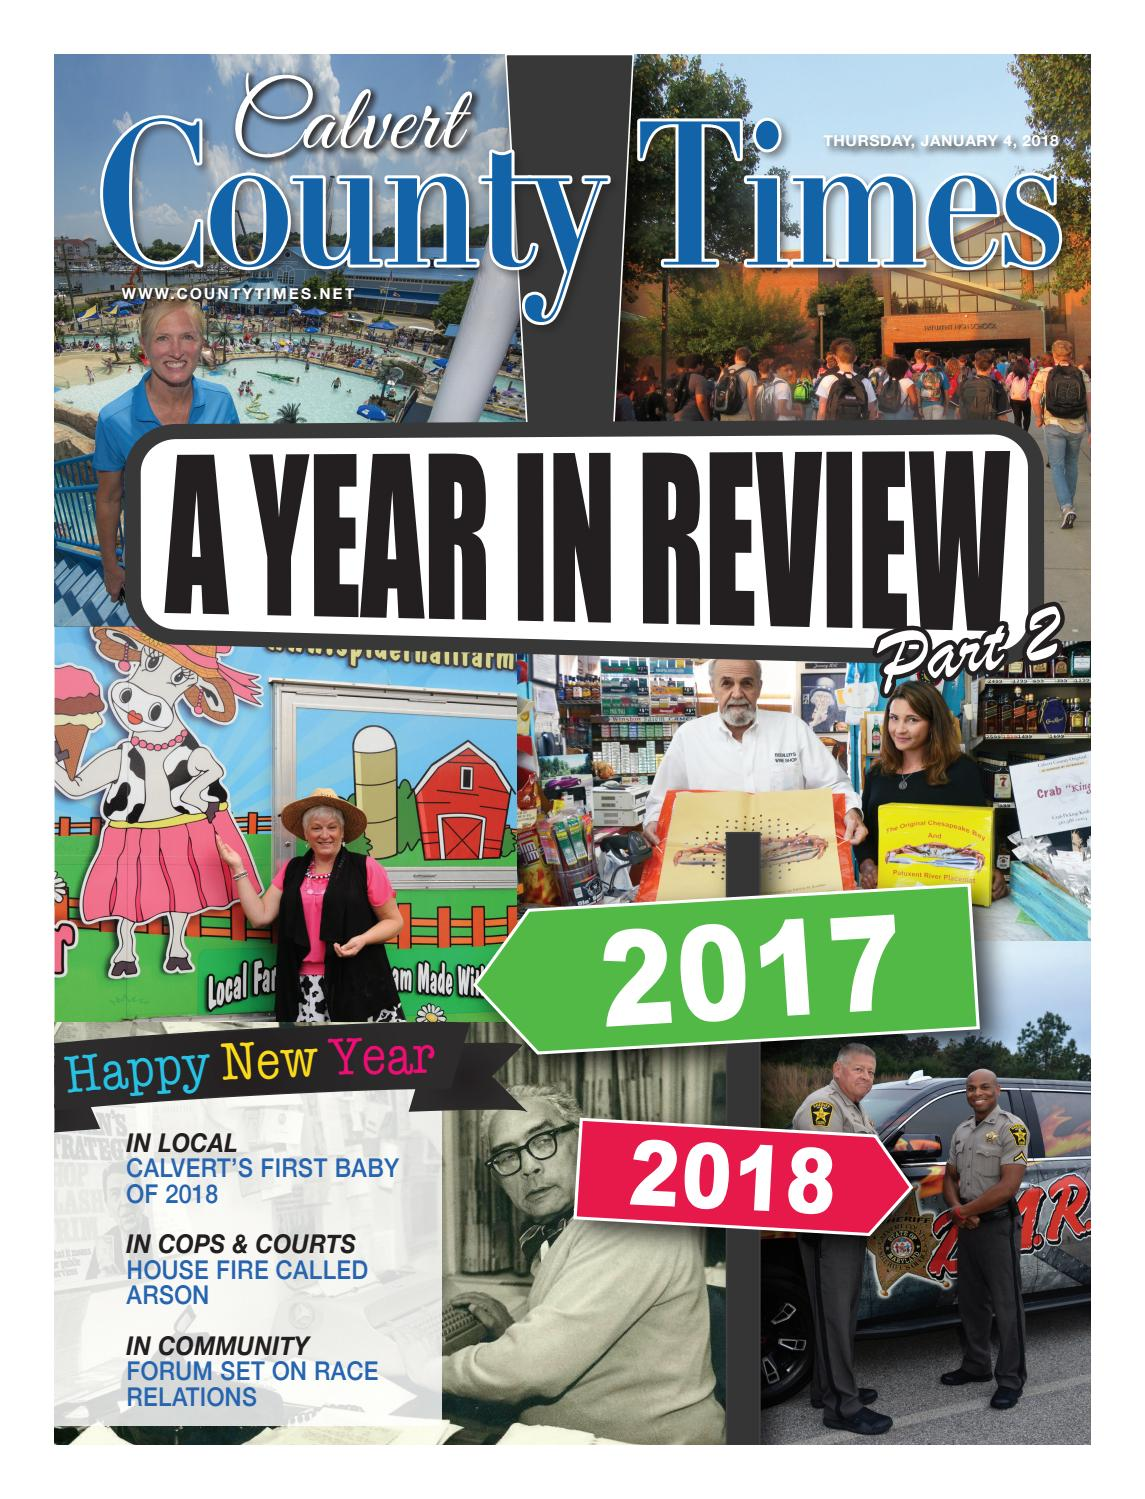 a place to call home by amy schisler reviews discussion a place called home book 2018-01-04 Calvert County Times by Southern Maryland Online - issuu